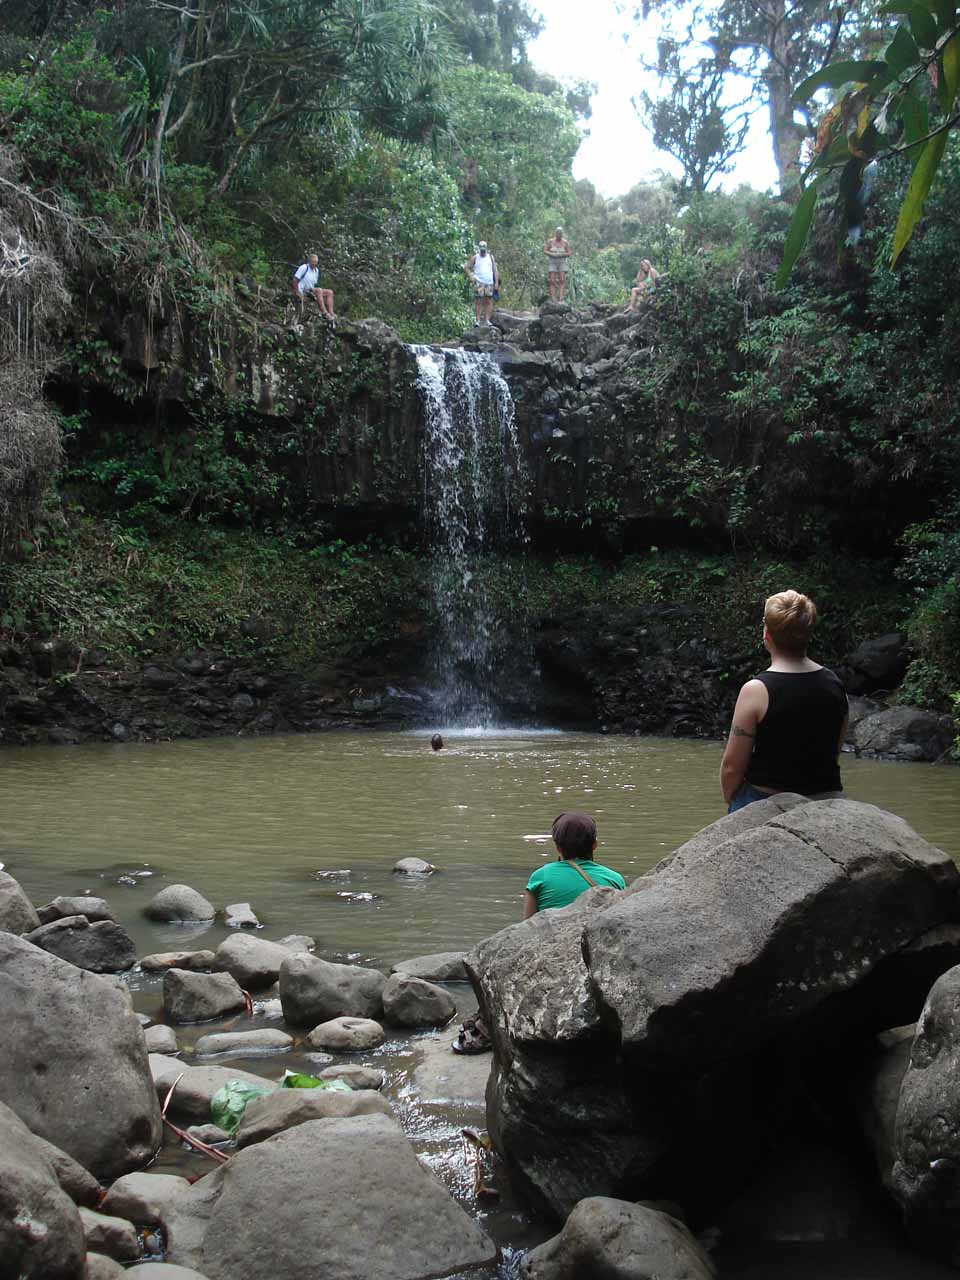 We finally spotted the first Twin Falls, where there were several people ready to take a plunge off its top